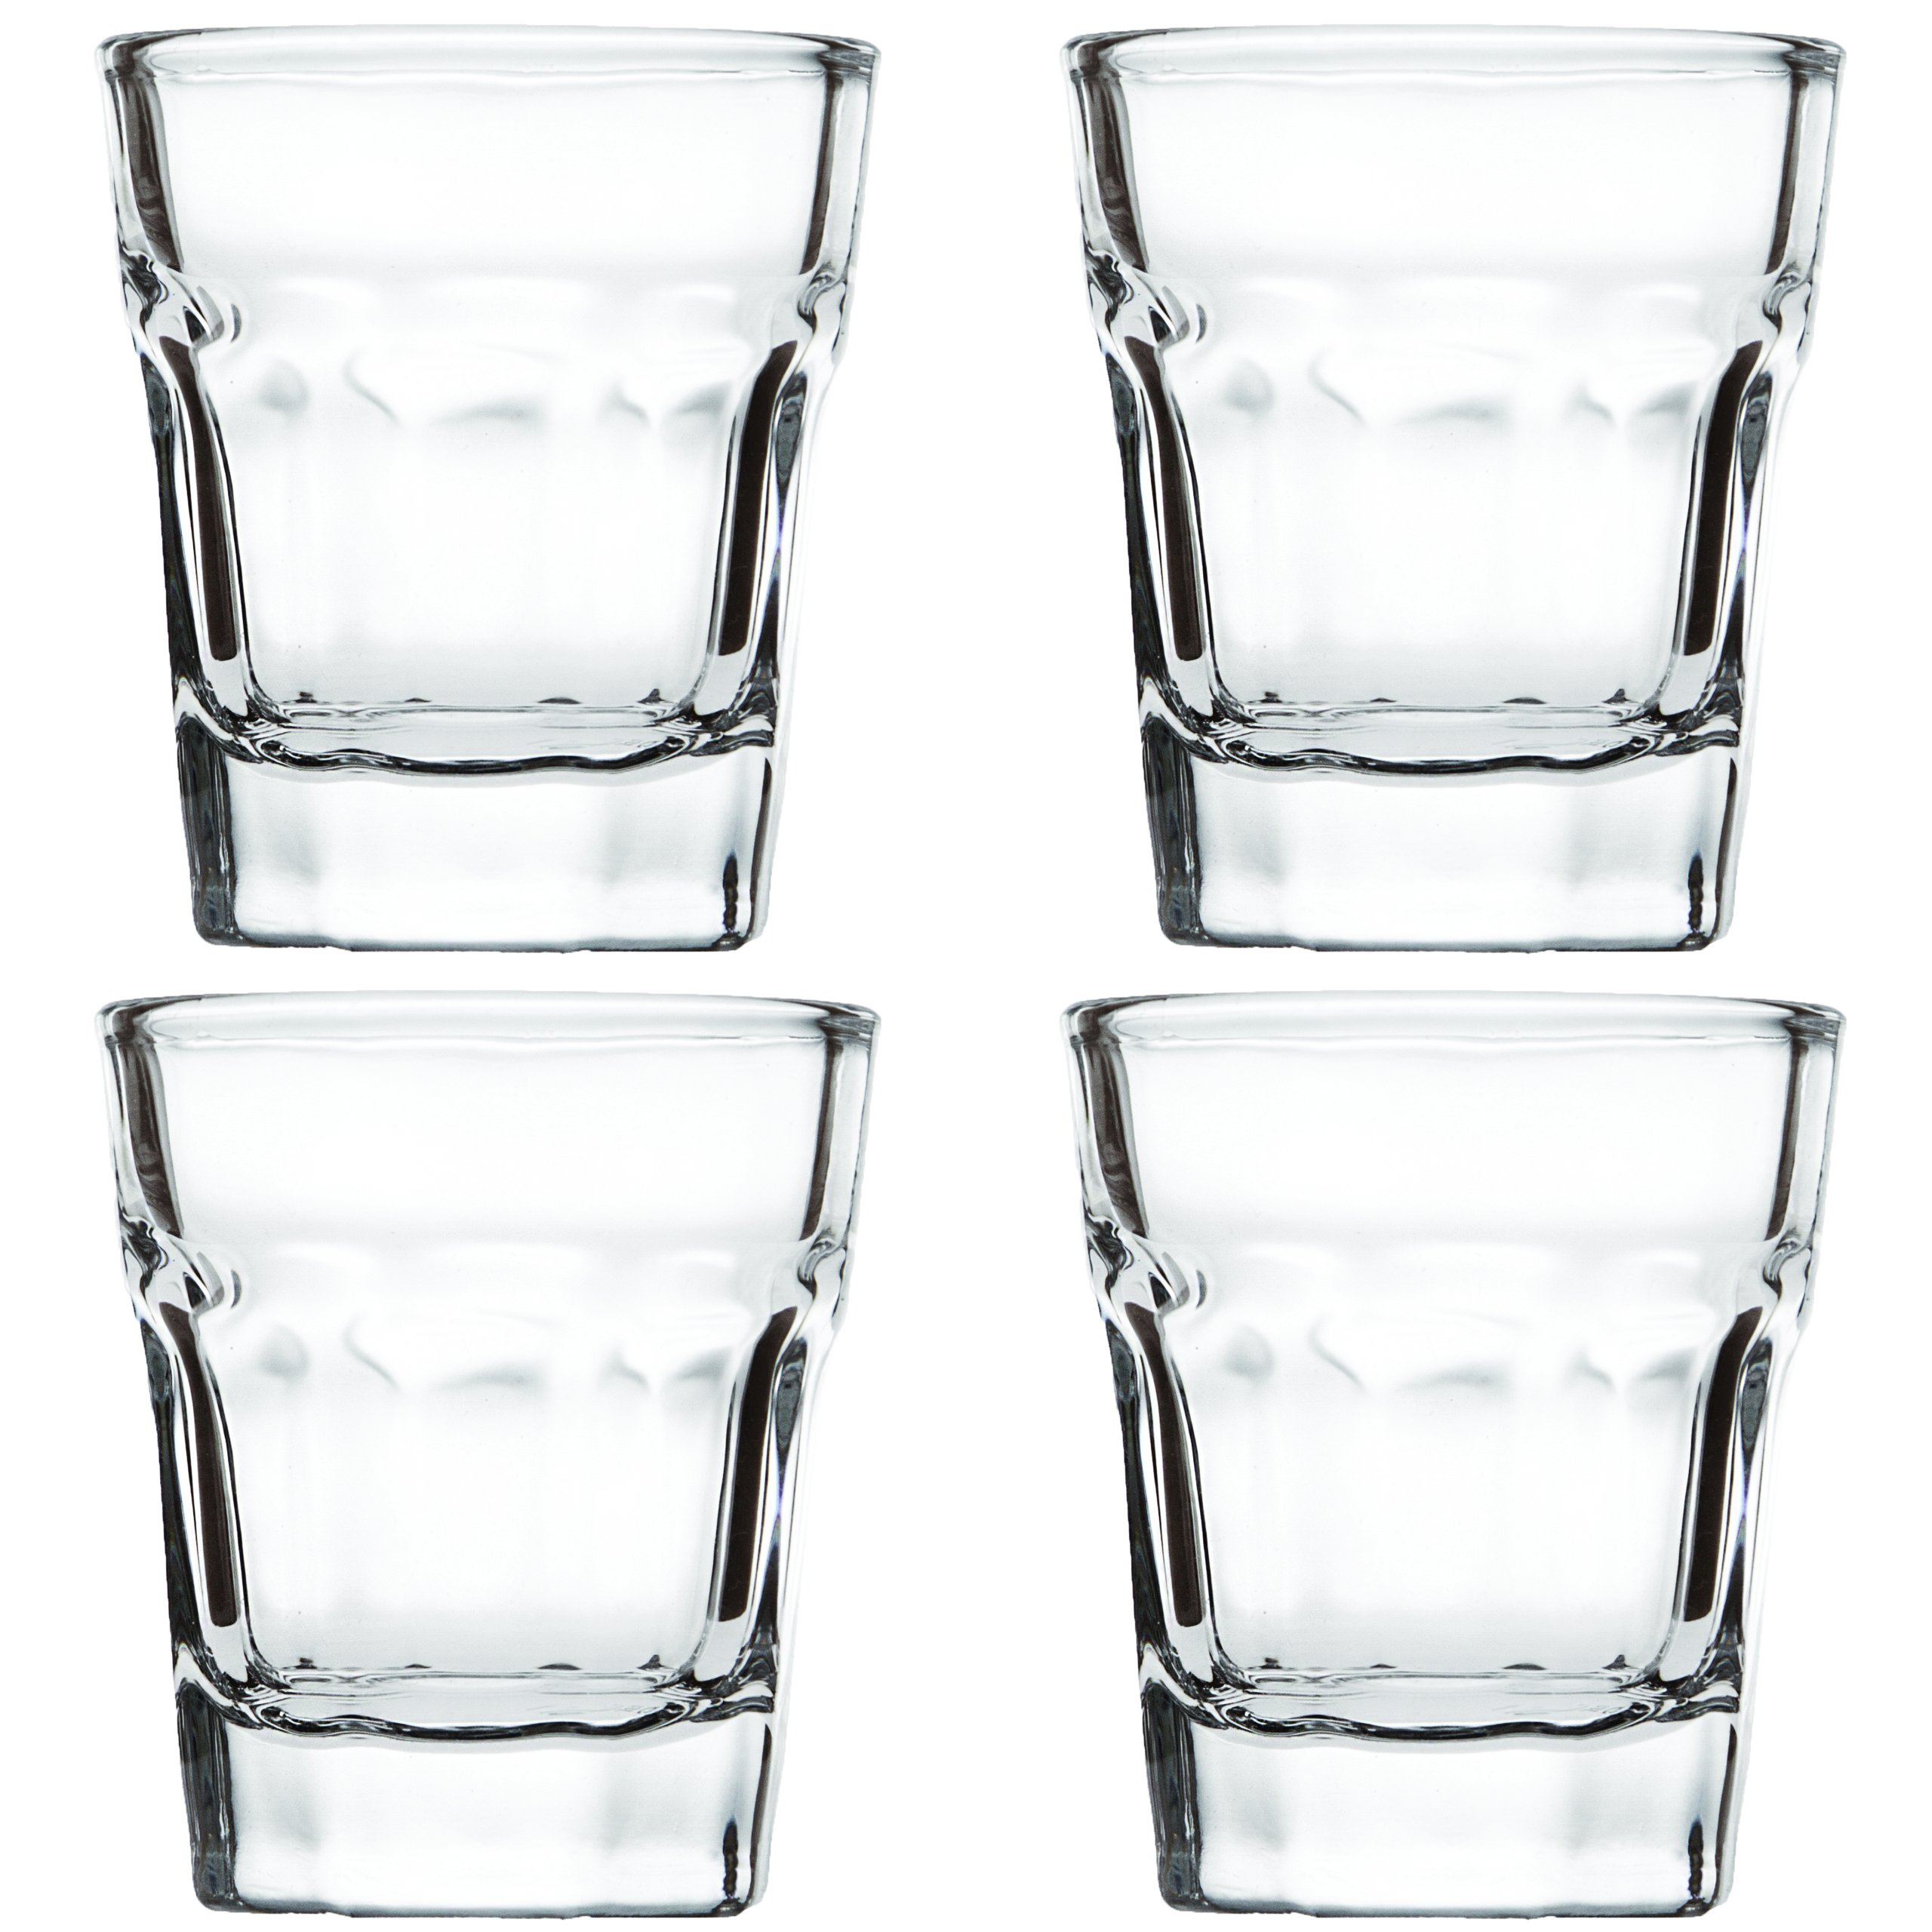 Shot Glass Set (4 Glasses) – Heavy Base 1.5 Ounce Shot Glasses For Liquor and Espresso – Bonus Tapered Liquid Pour Spout and Polishing Cleaning Cloth Included in Gift Packaging (Clear)